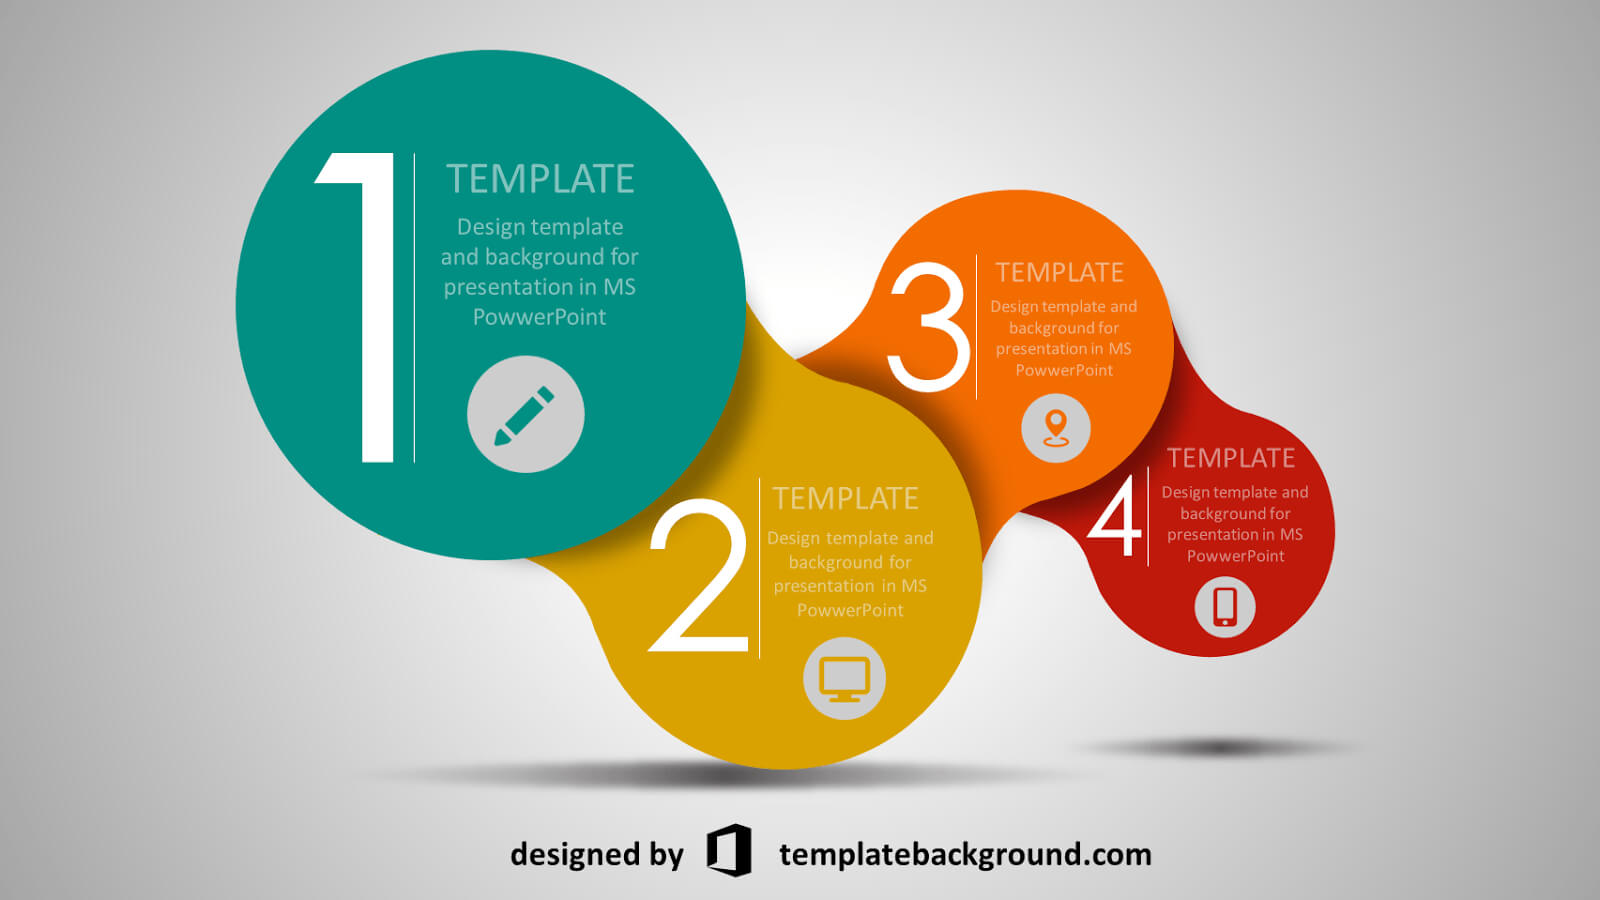 023 Template Ideas Animated Ppt Templates Free Shocking Pertaining To Powerpoint Animated Templates Free Download 2010